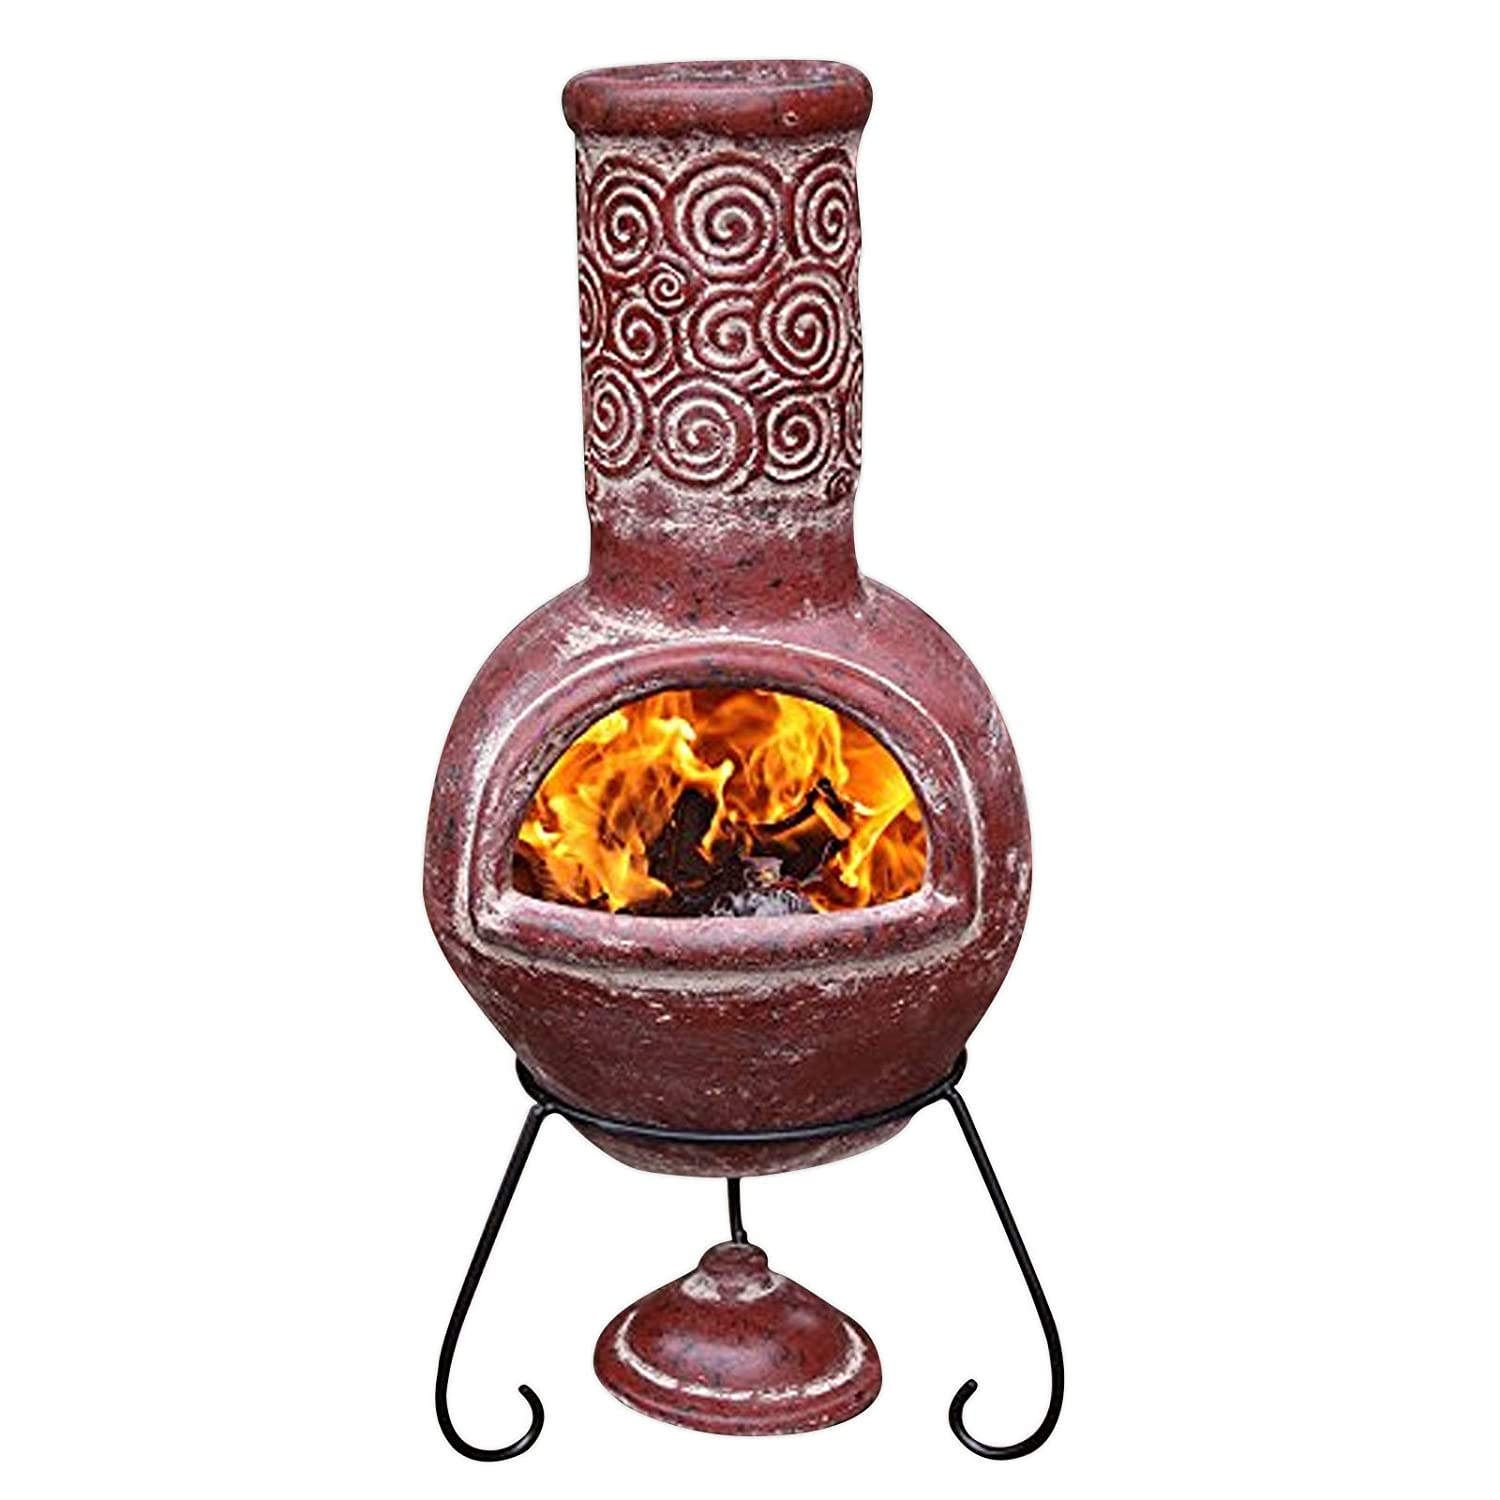 Gardeco Espiral Mexican Chimney, Red, Large C21ES.02